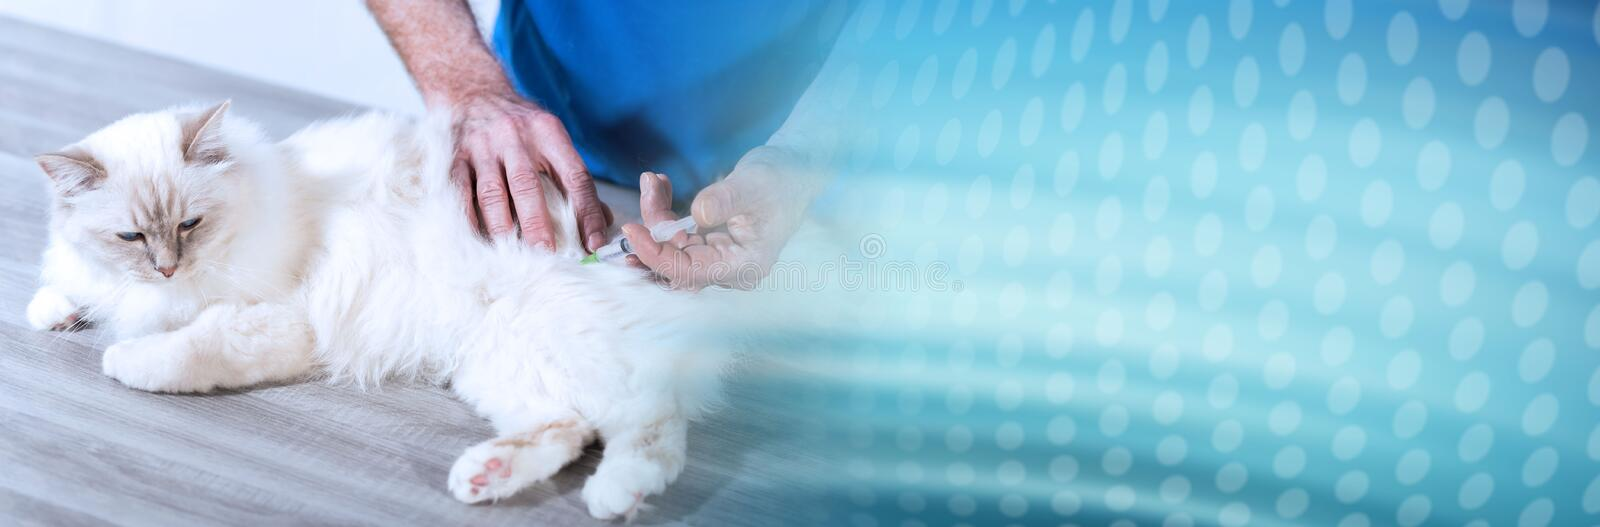 Veterinarian giving an injection to a sacred cat of burma. panoramic banner. Veterinarian giving an injection to a white sacred cat of burma. panoramic banner stock photos